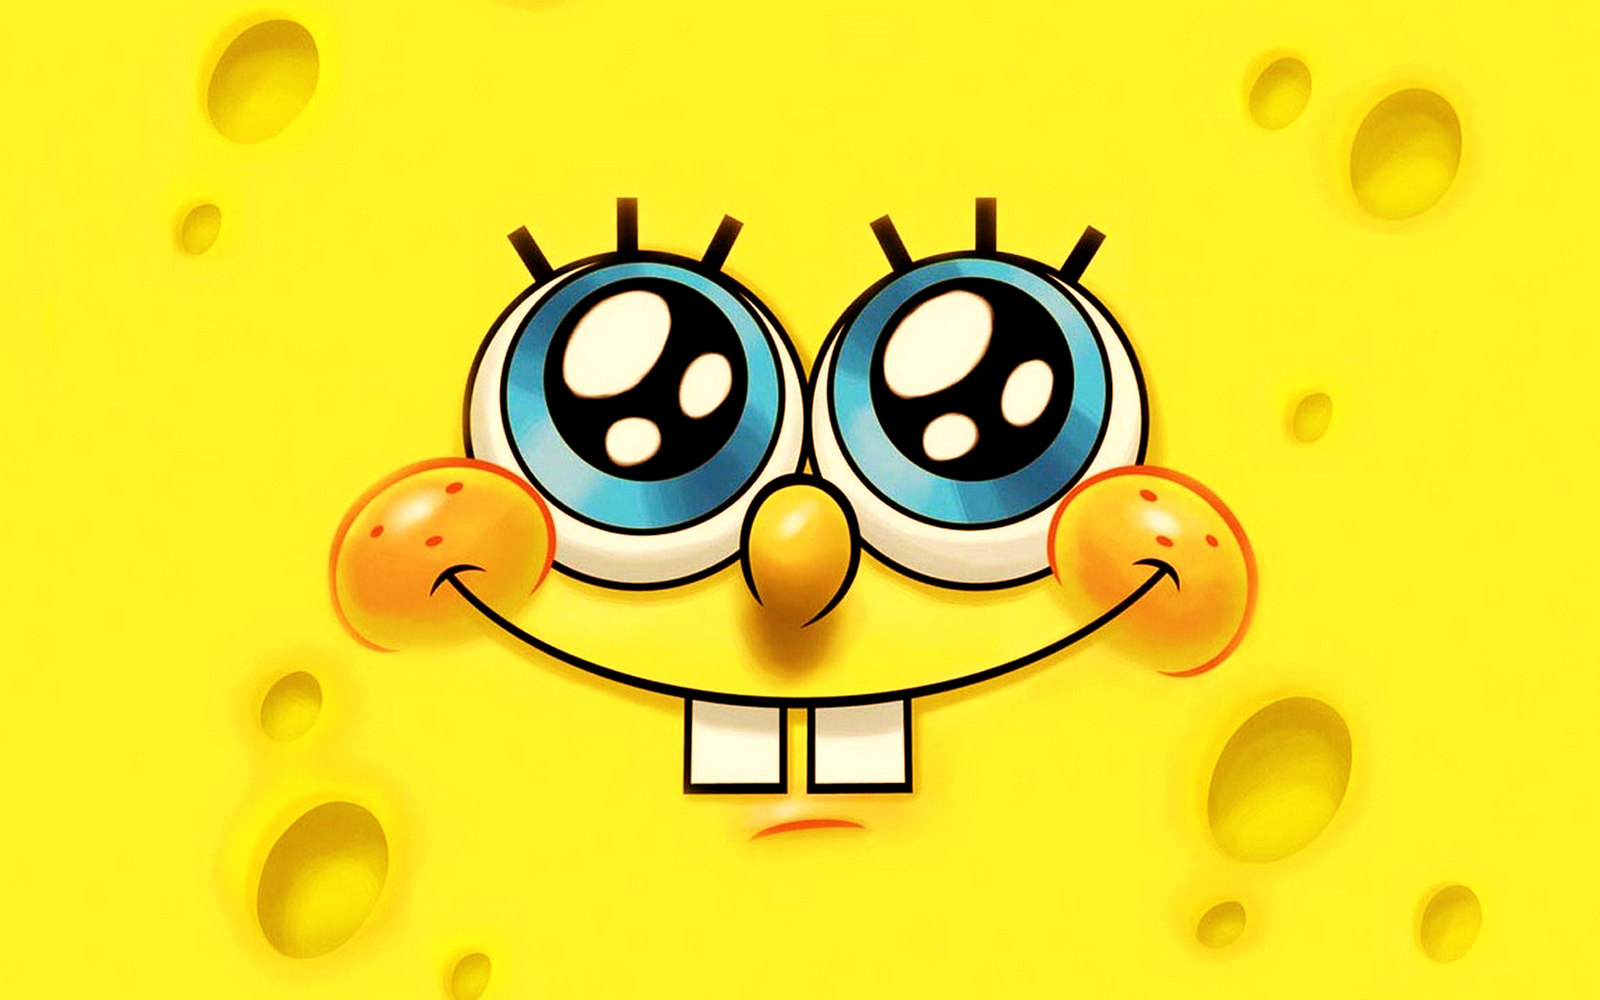 Funny Spongebob Square Pants Hd Wallpapers Download Free Wallpapers